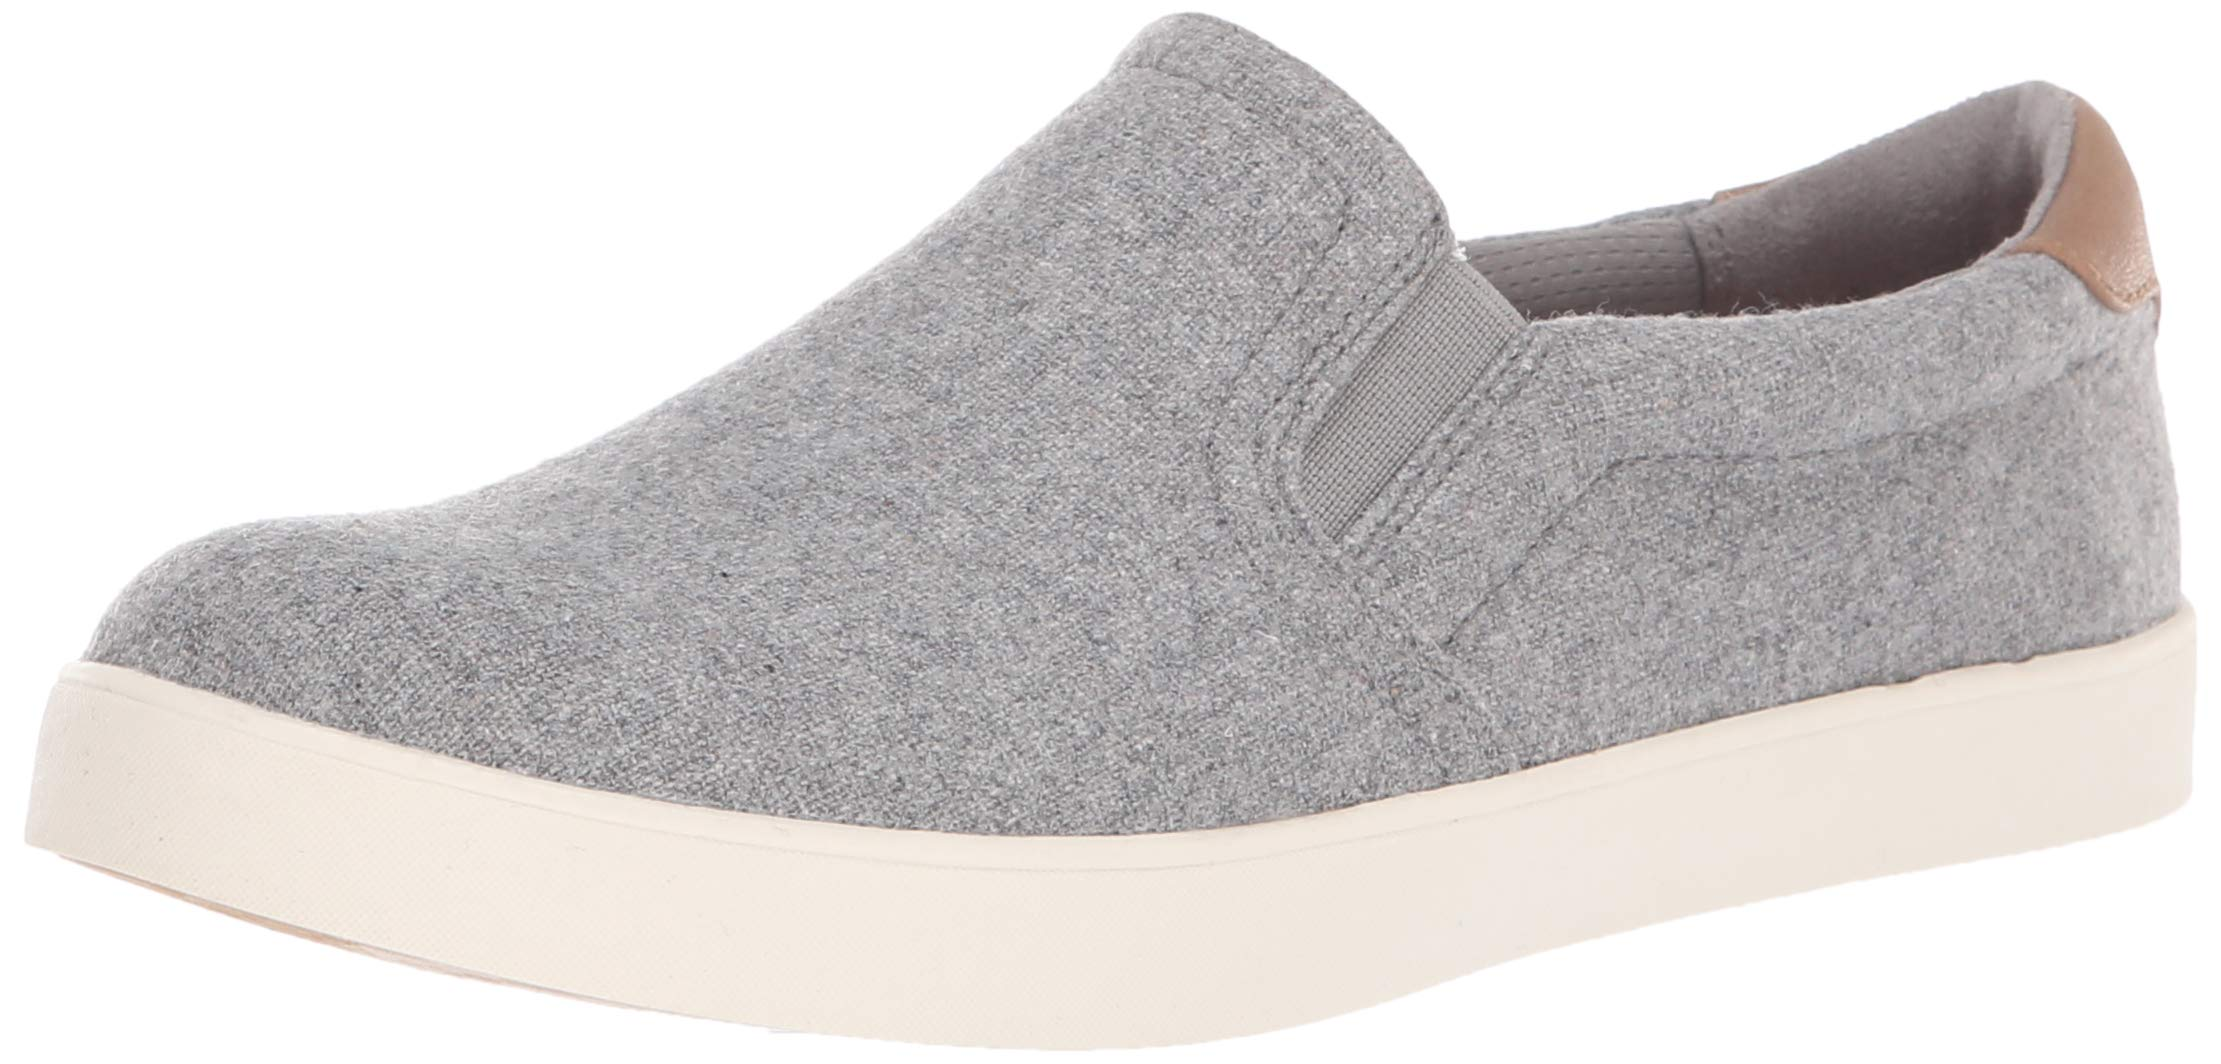 Dr. Scholl's Shoes Women's Madison Sneaker Light Grey Flannel Fabric 6.5 M US